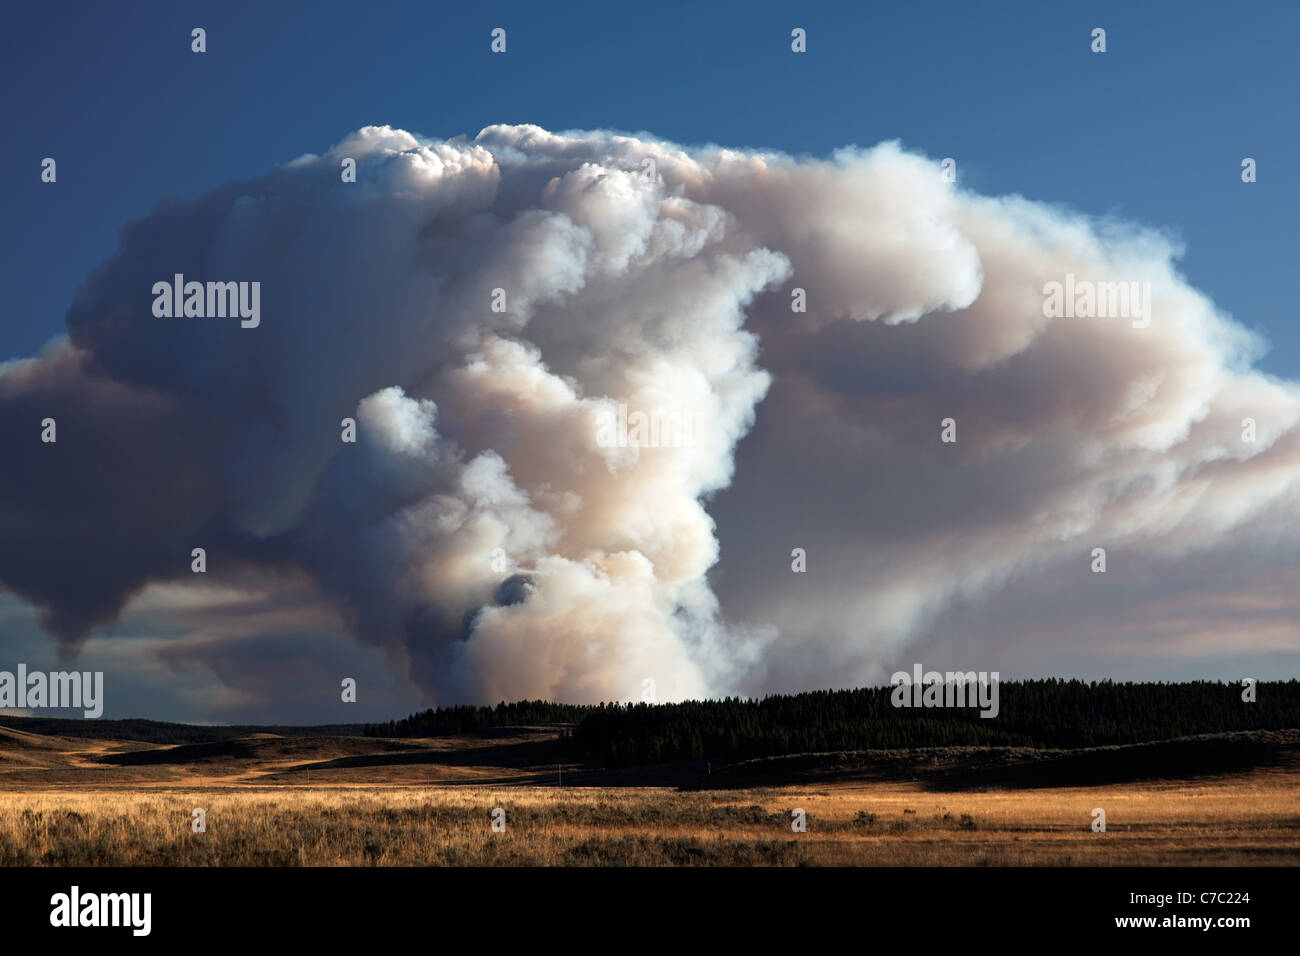 Smoke and flames of forest fire burning on Central Plateau at sunset as viewed from Hayden Valley, Yellowstone National - Stock Image